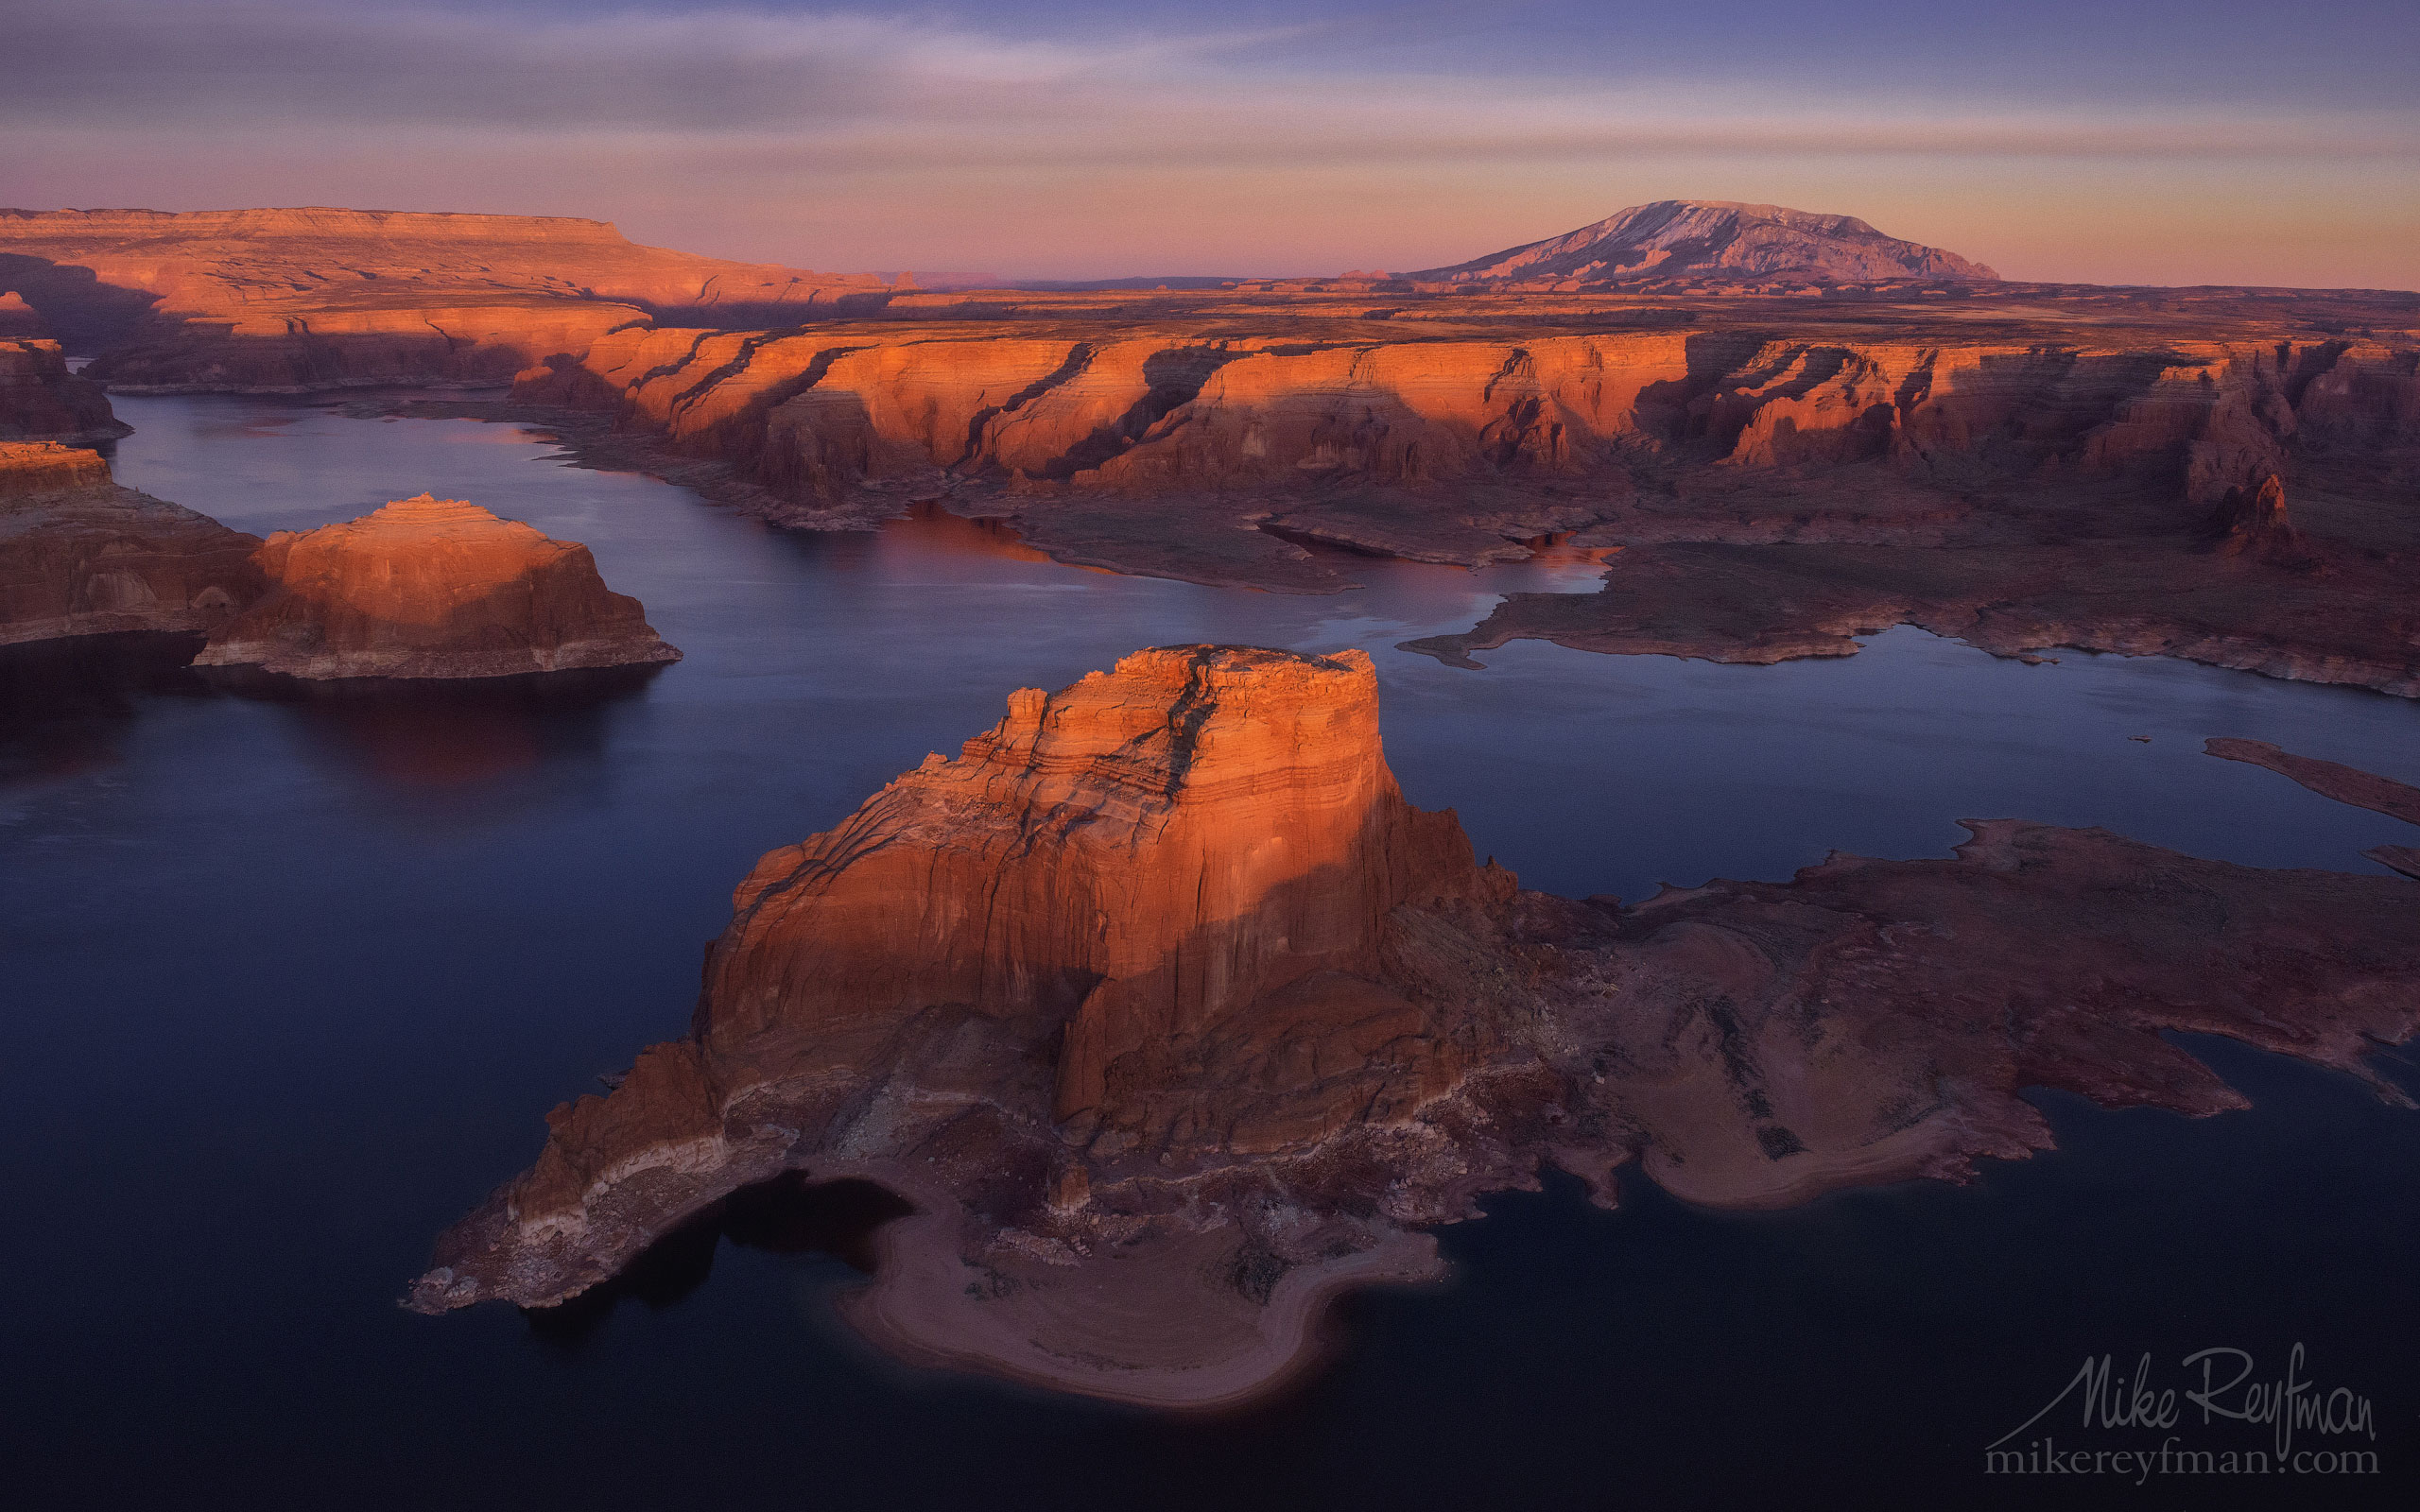 Gregory Butte. Lake Powell, Glen Canyon NRA, Utah/Arizona, USA. Aerial. 022-LP3_D1B9999_527.jpg - Lake Powell, Glen Canyon NAR. Colorado and Sun Juan Rivers. Utah/Arizona, USA  - Mike Reyfman Photography